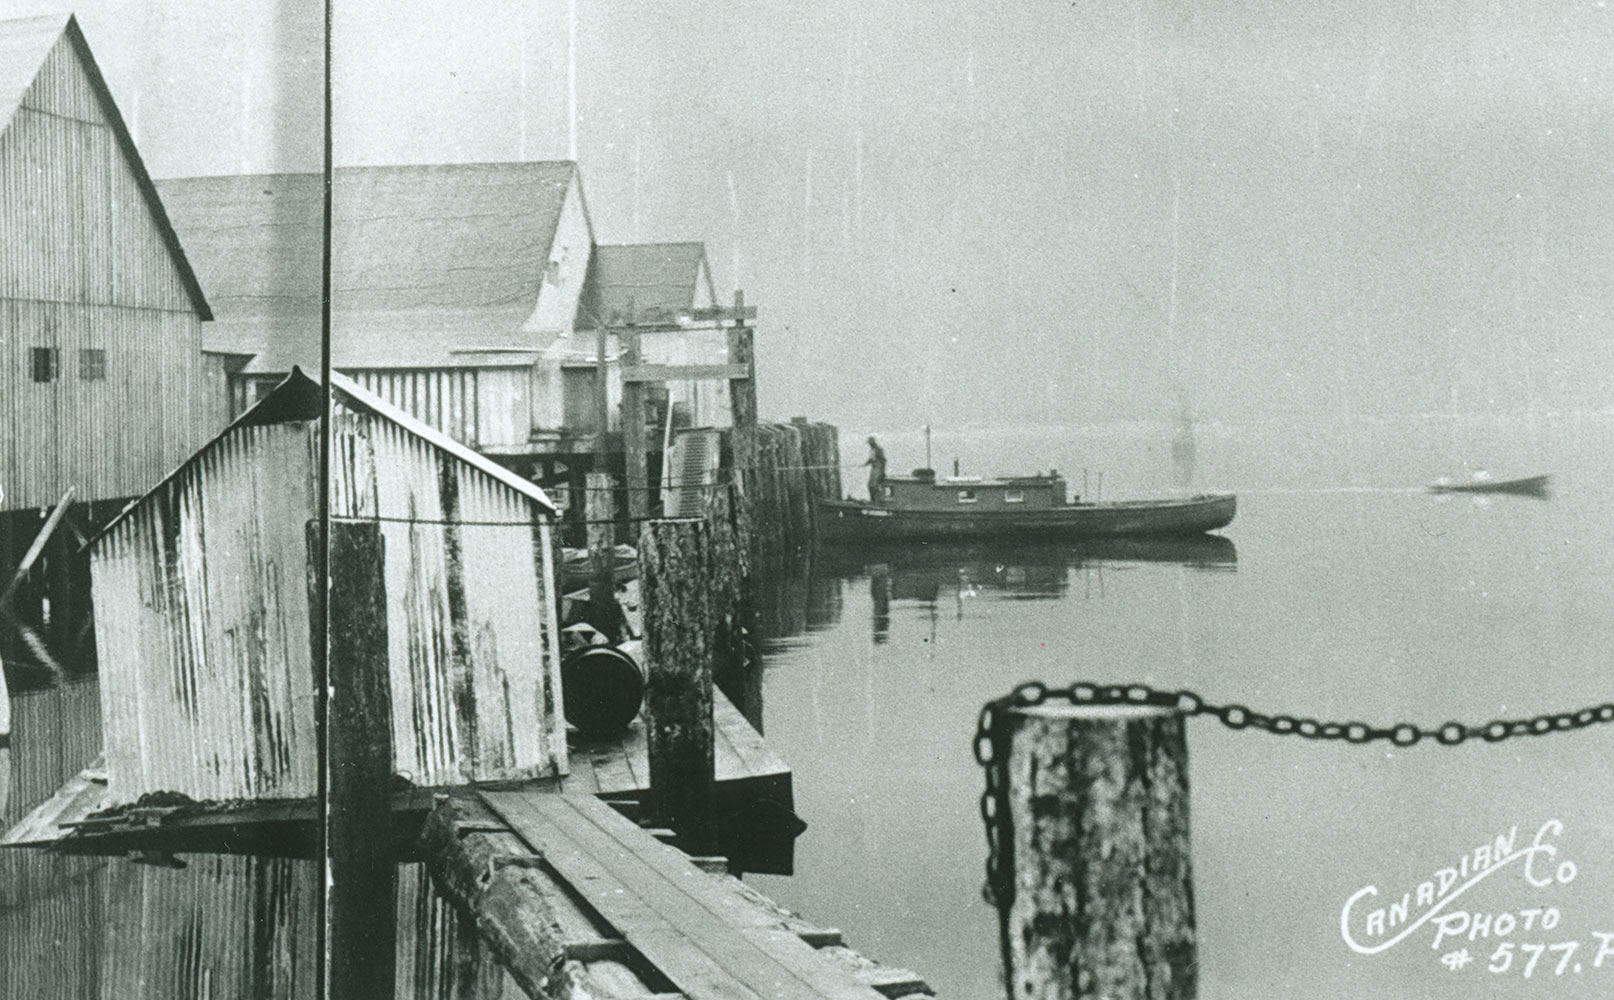 "The main cannery building is supported by floats and pilings. The words ""Canadian Co. Photo #577.P."" are inscribed on the photo."